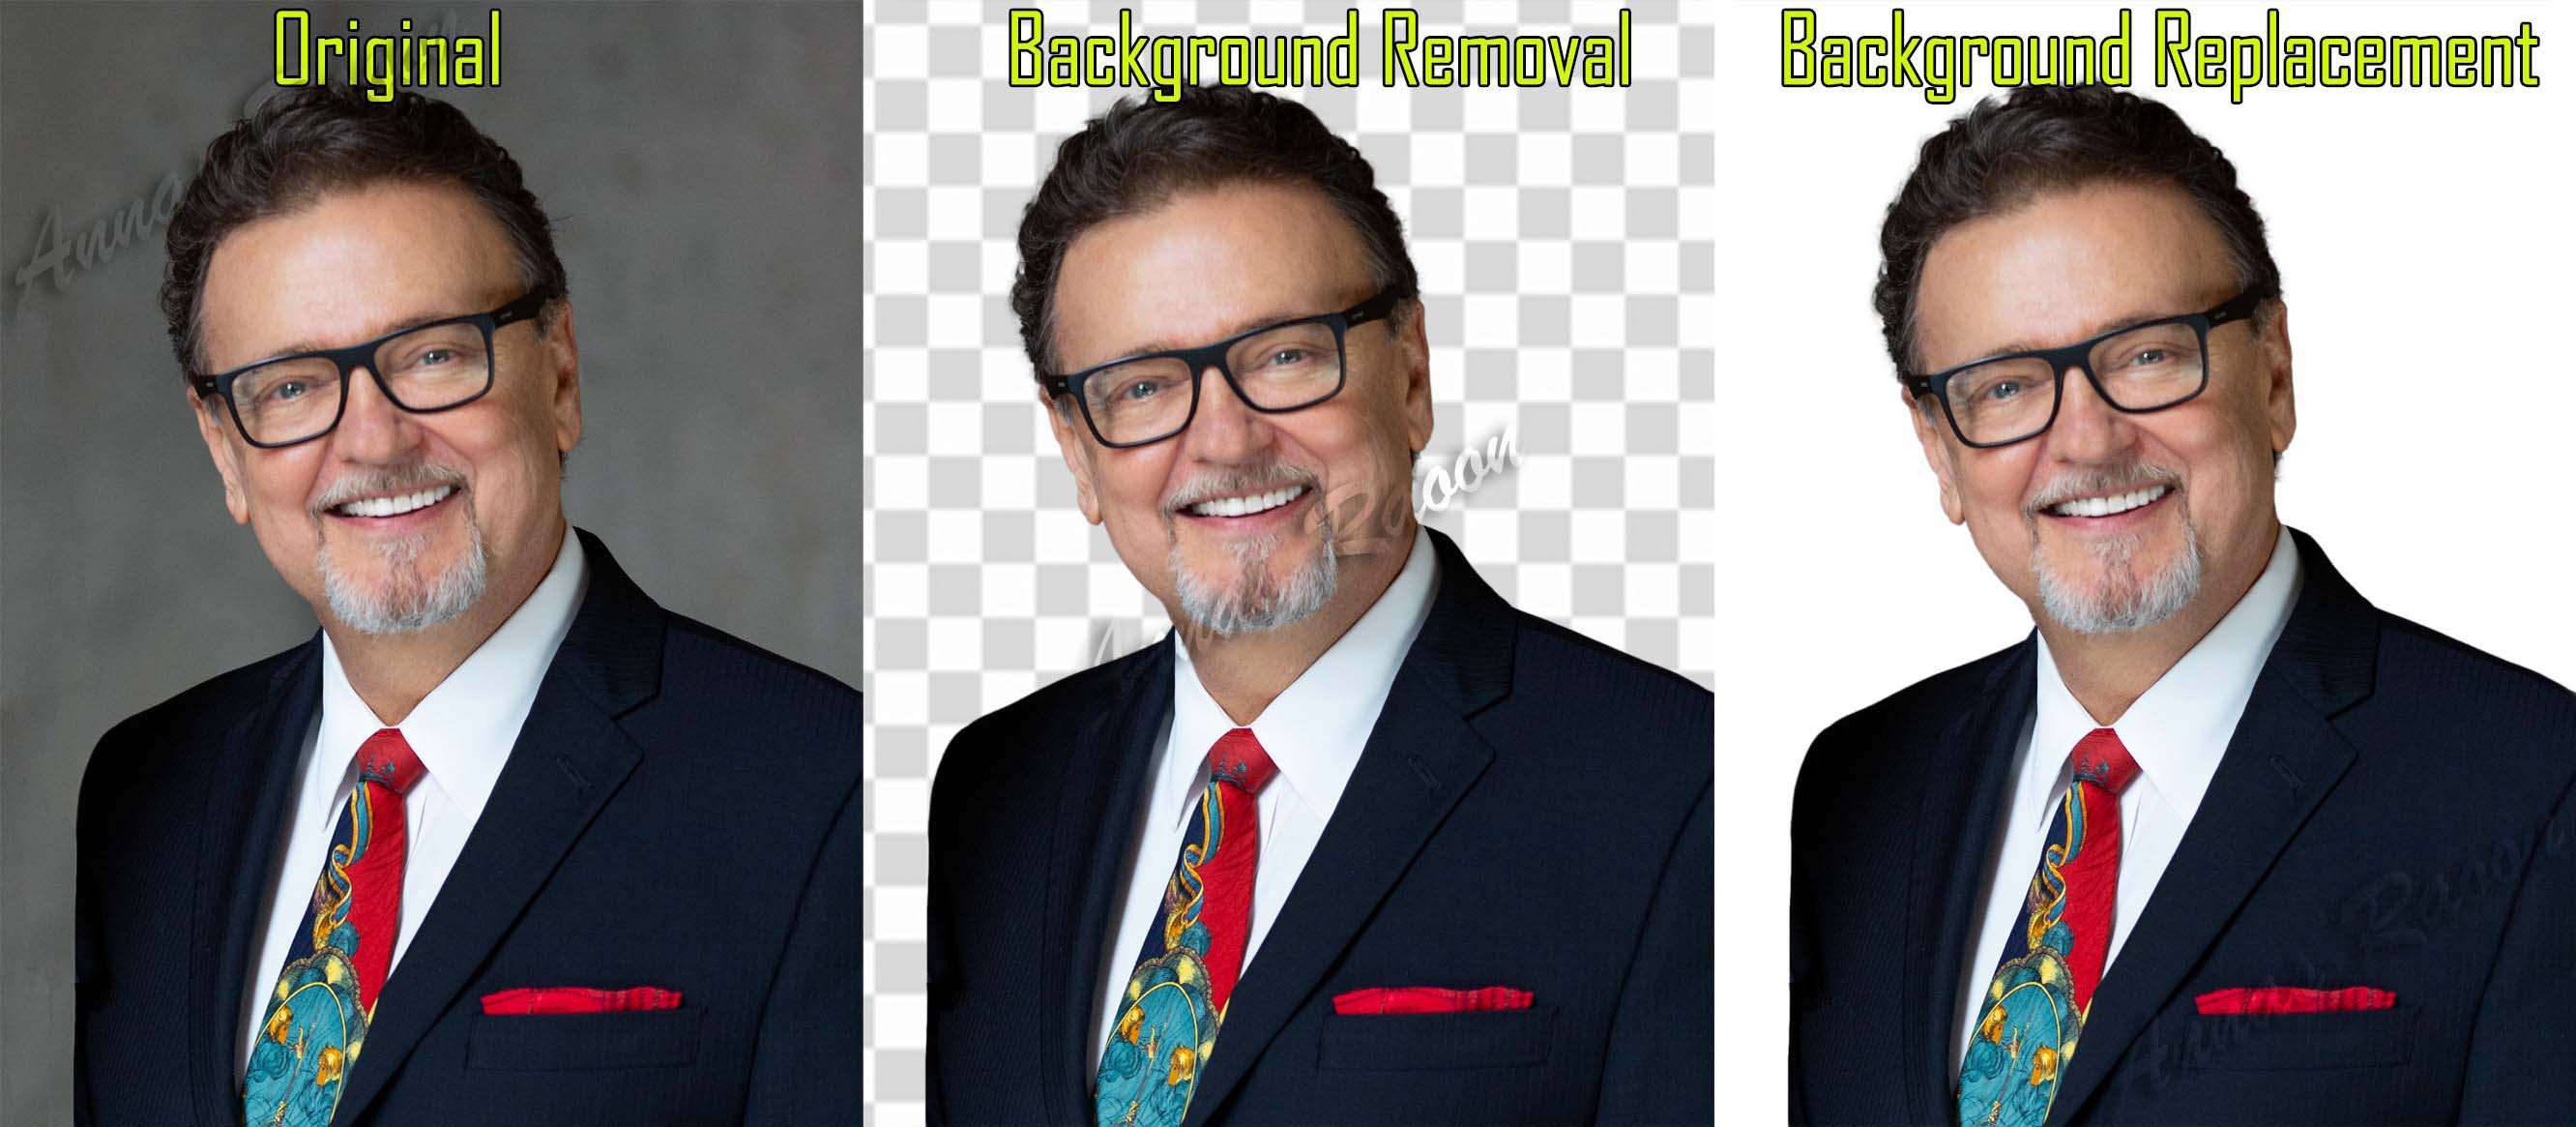 20 Images Background Removal Professionally in 24 hours